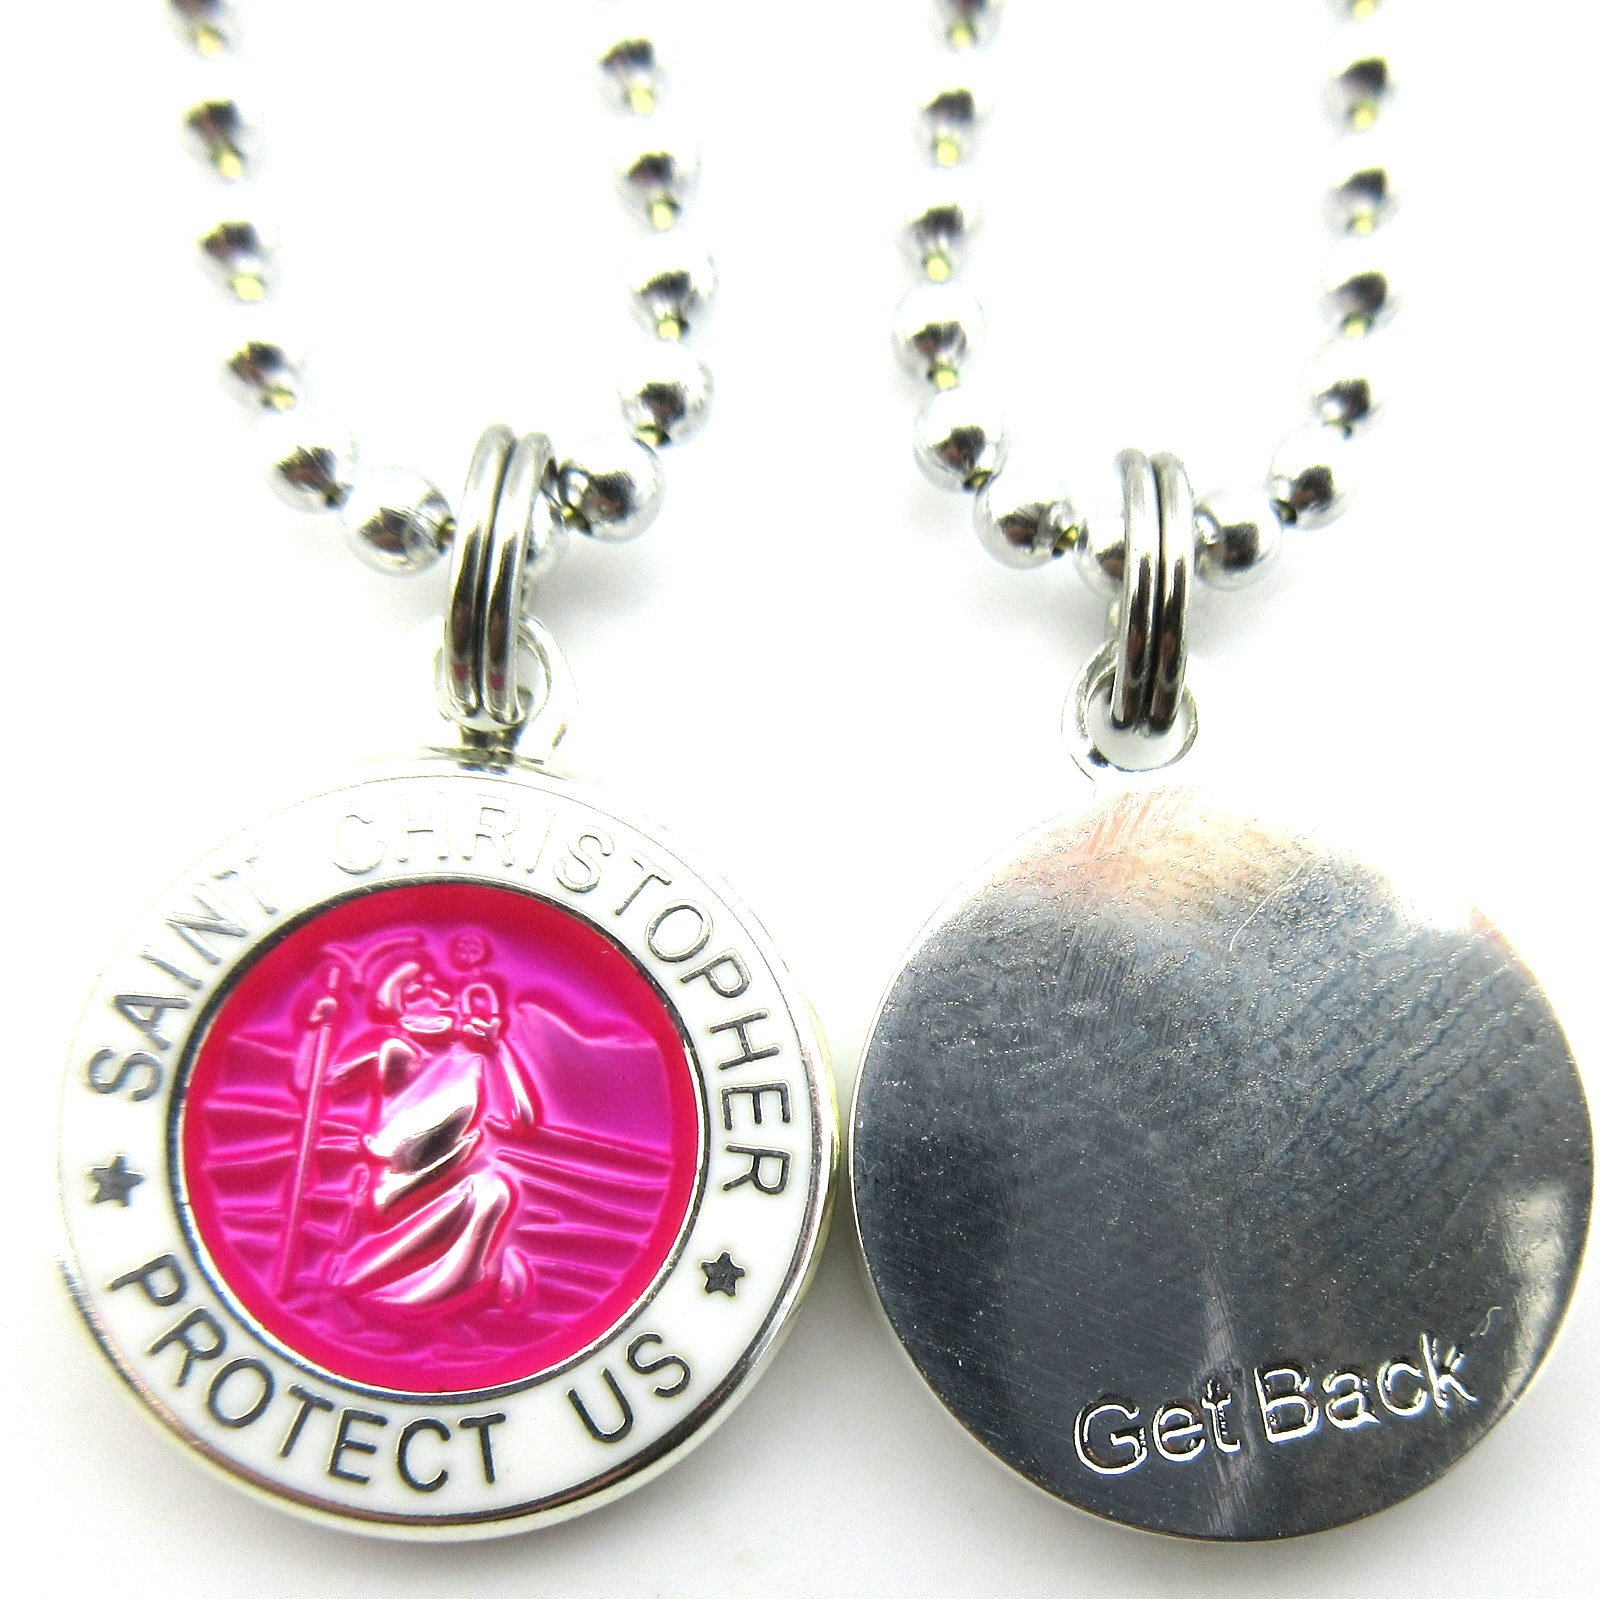 Get Back Supply Co Mini Saint Christopher Surf Medal Pendant Necklace,Pomegranate/White PG/WH by Get Back Supply Co (Image #2)